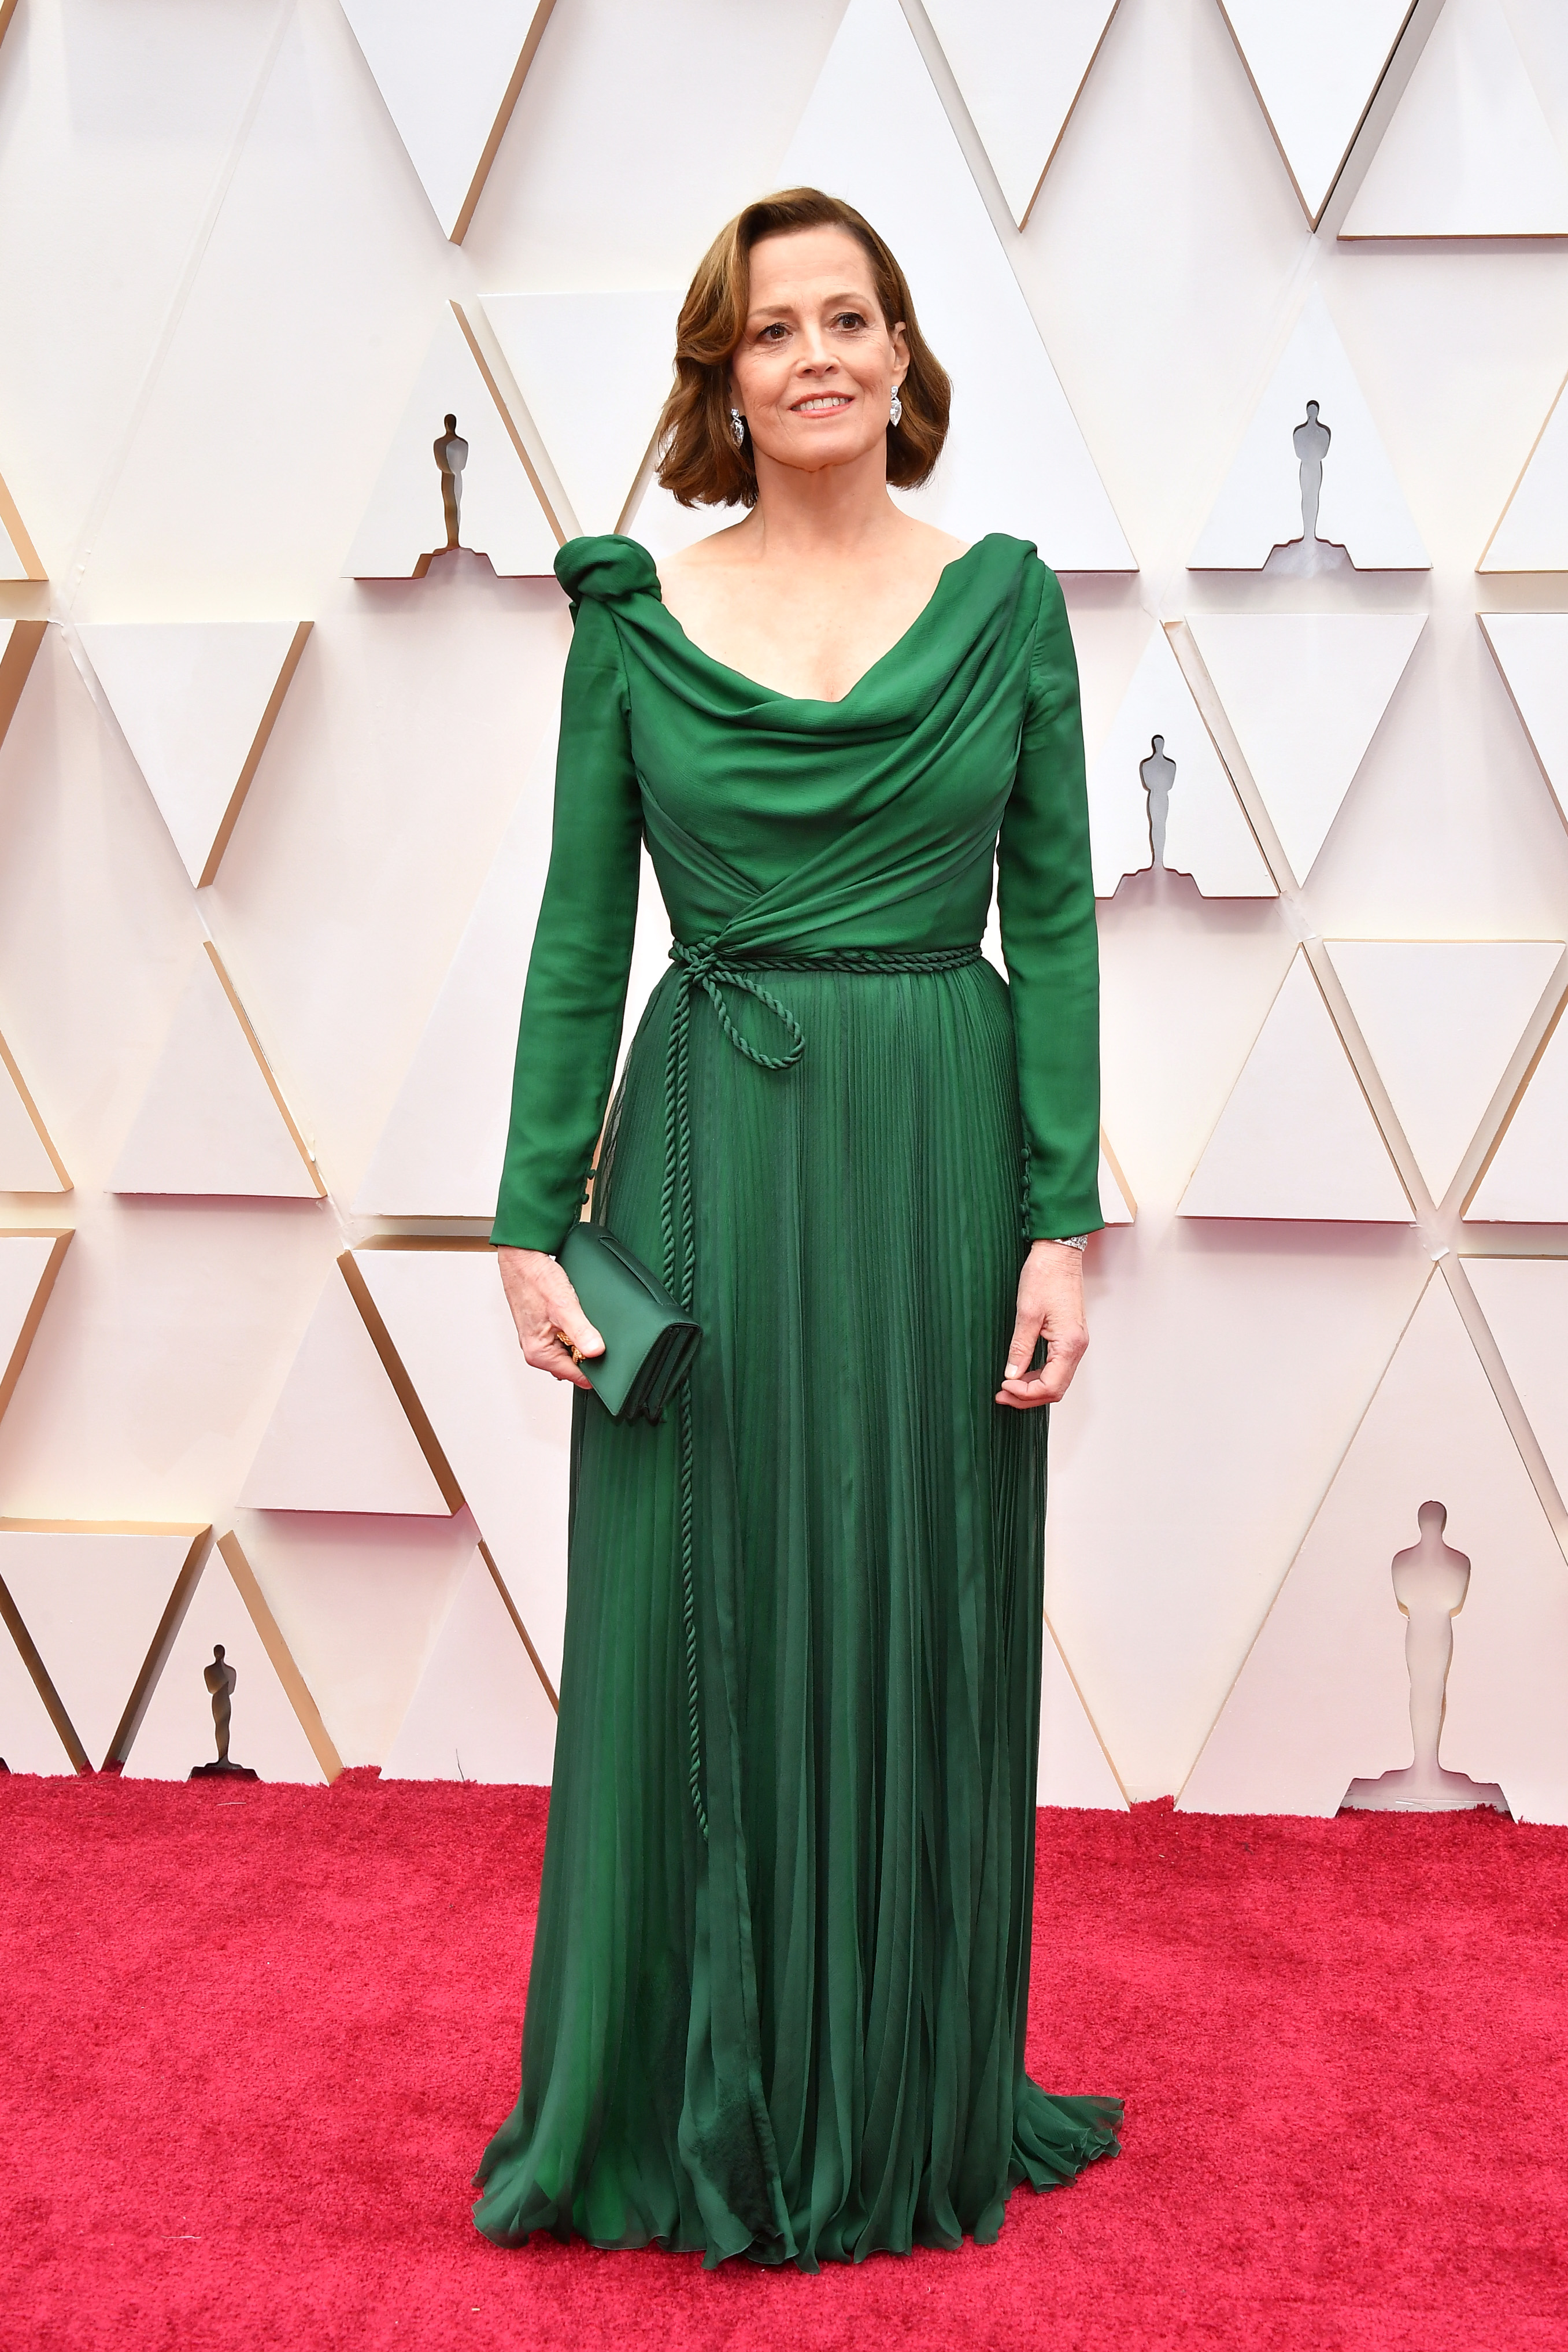 HOLLYWOOD, CALIFORNIA - FEBRUARY 09: Sigourney Weaver attends the 92nd Annual Academy Awards at Hollywood and Highland on February 09, 2020 in Hollywood, California. (Photo by Amy Sussman/Getty Images)